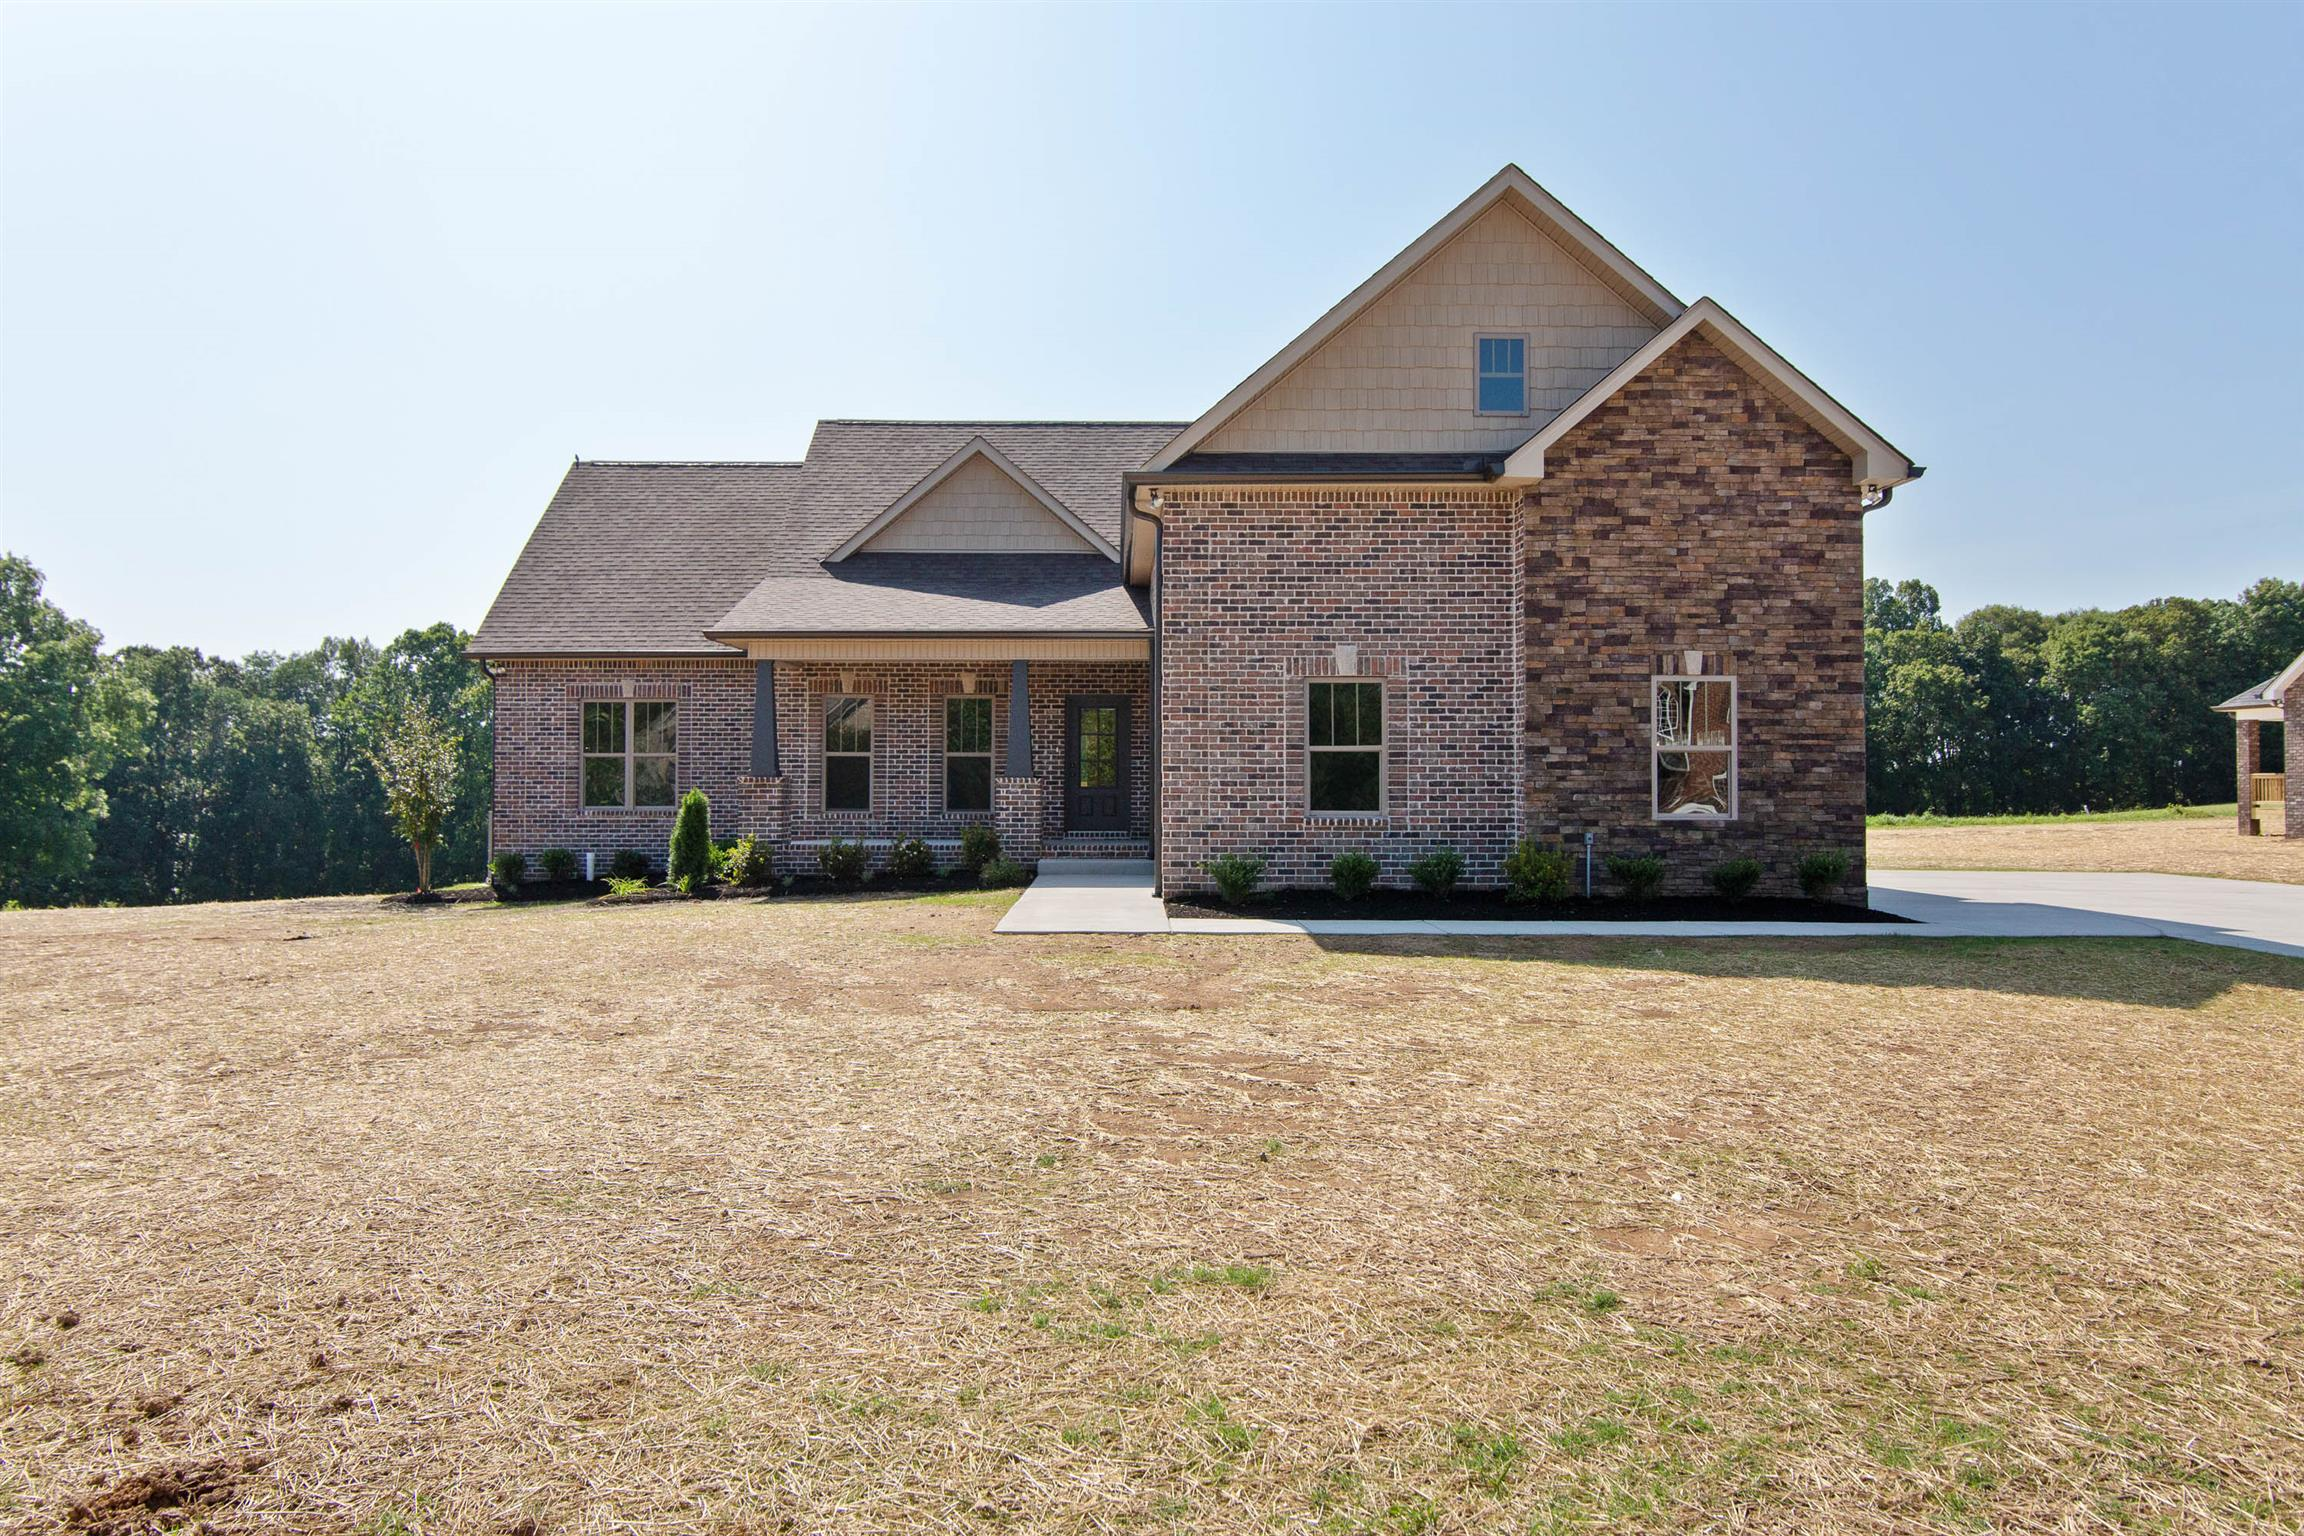 4035 Ironwood Dr, Greenbrier, TN 37073 - Greenbrier, TN real estate listing